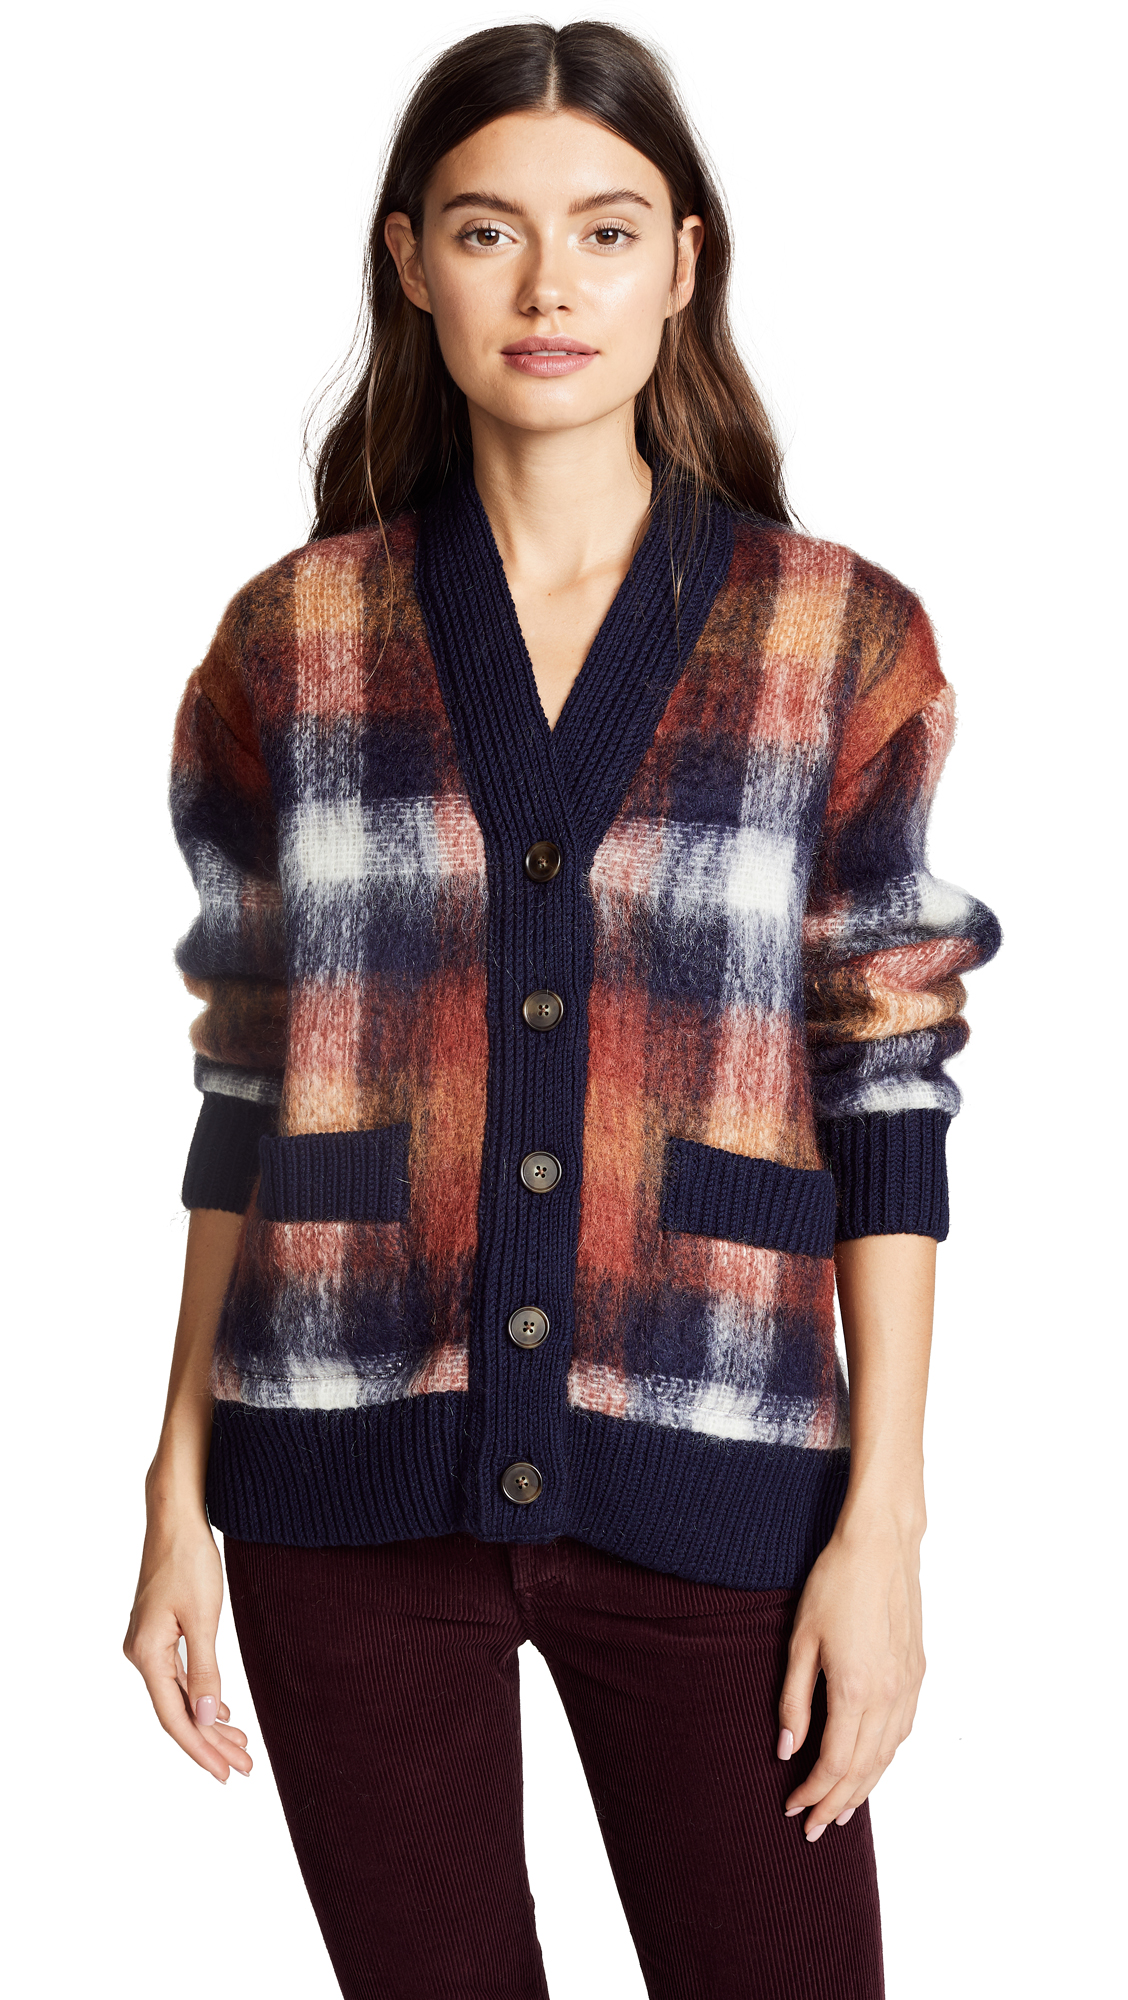 Sea Jane Mohair Cardigan In Plaid Multi